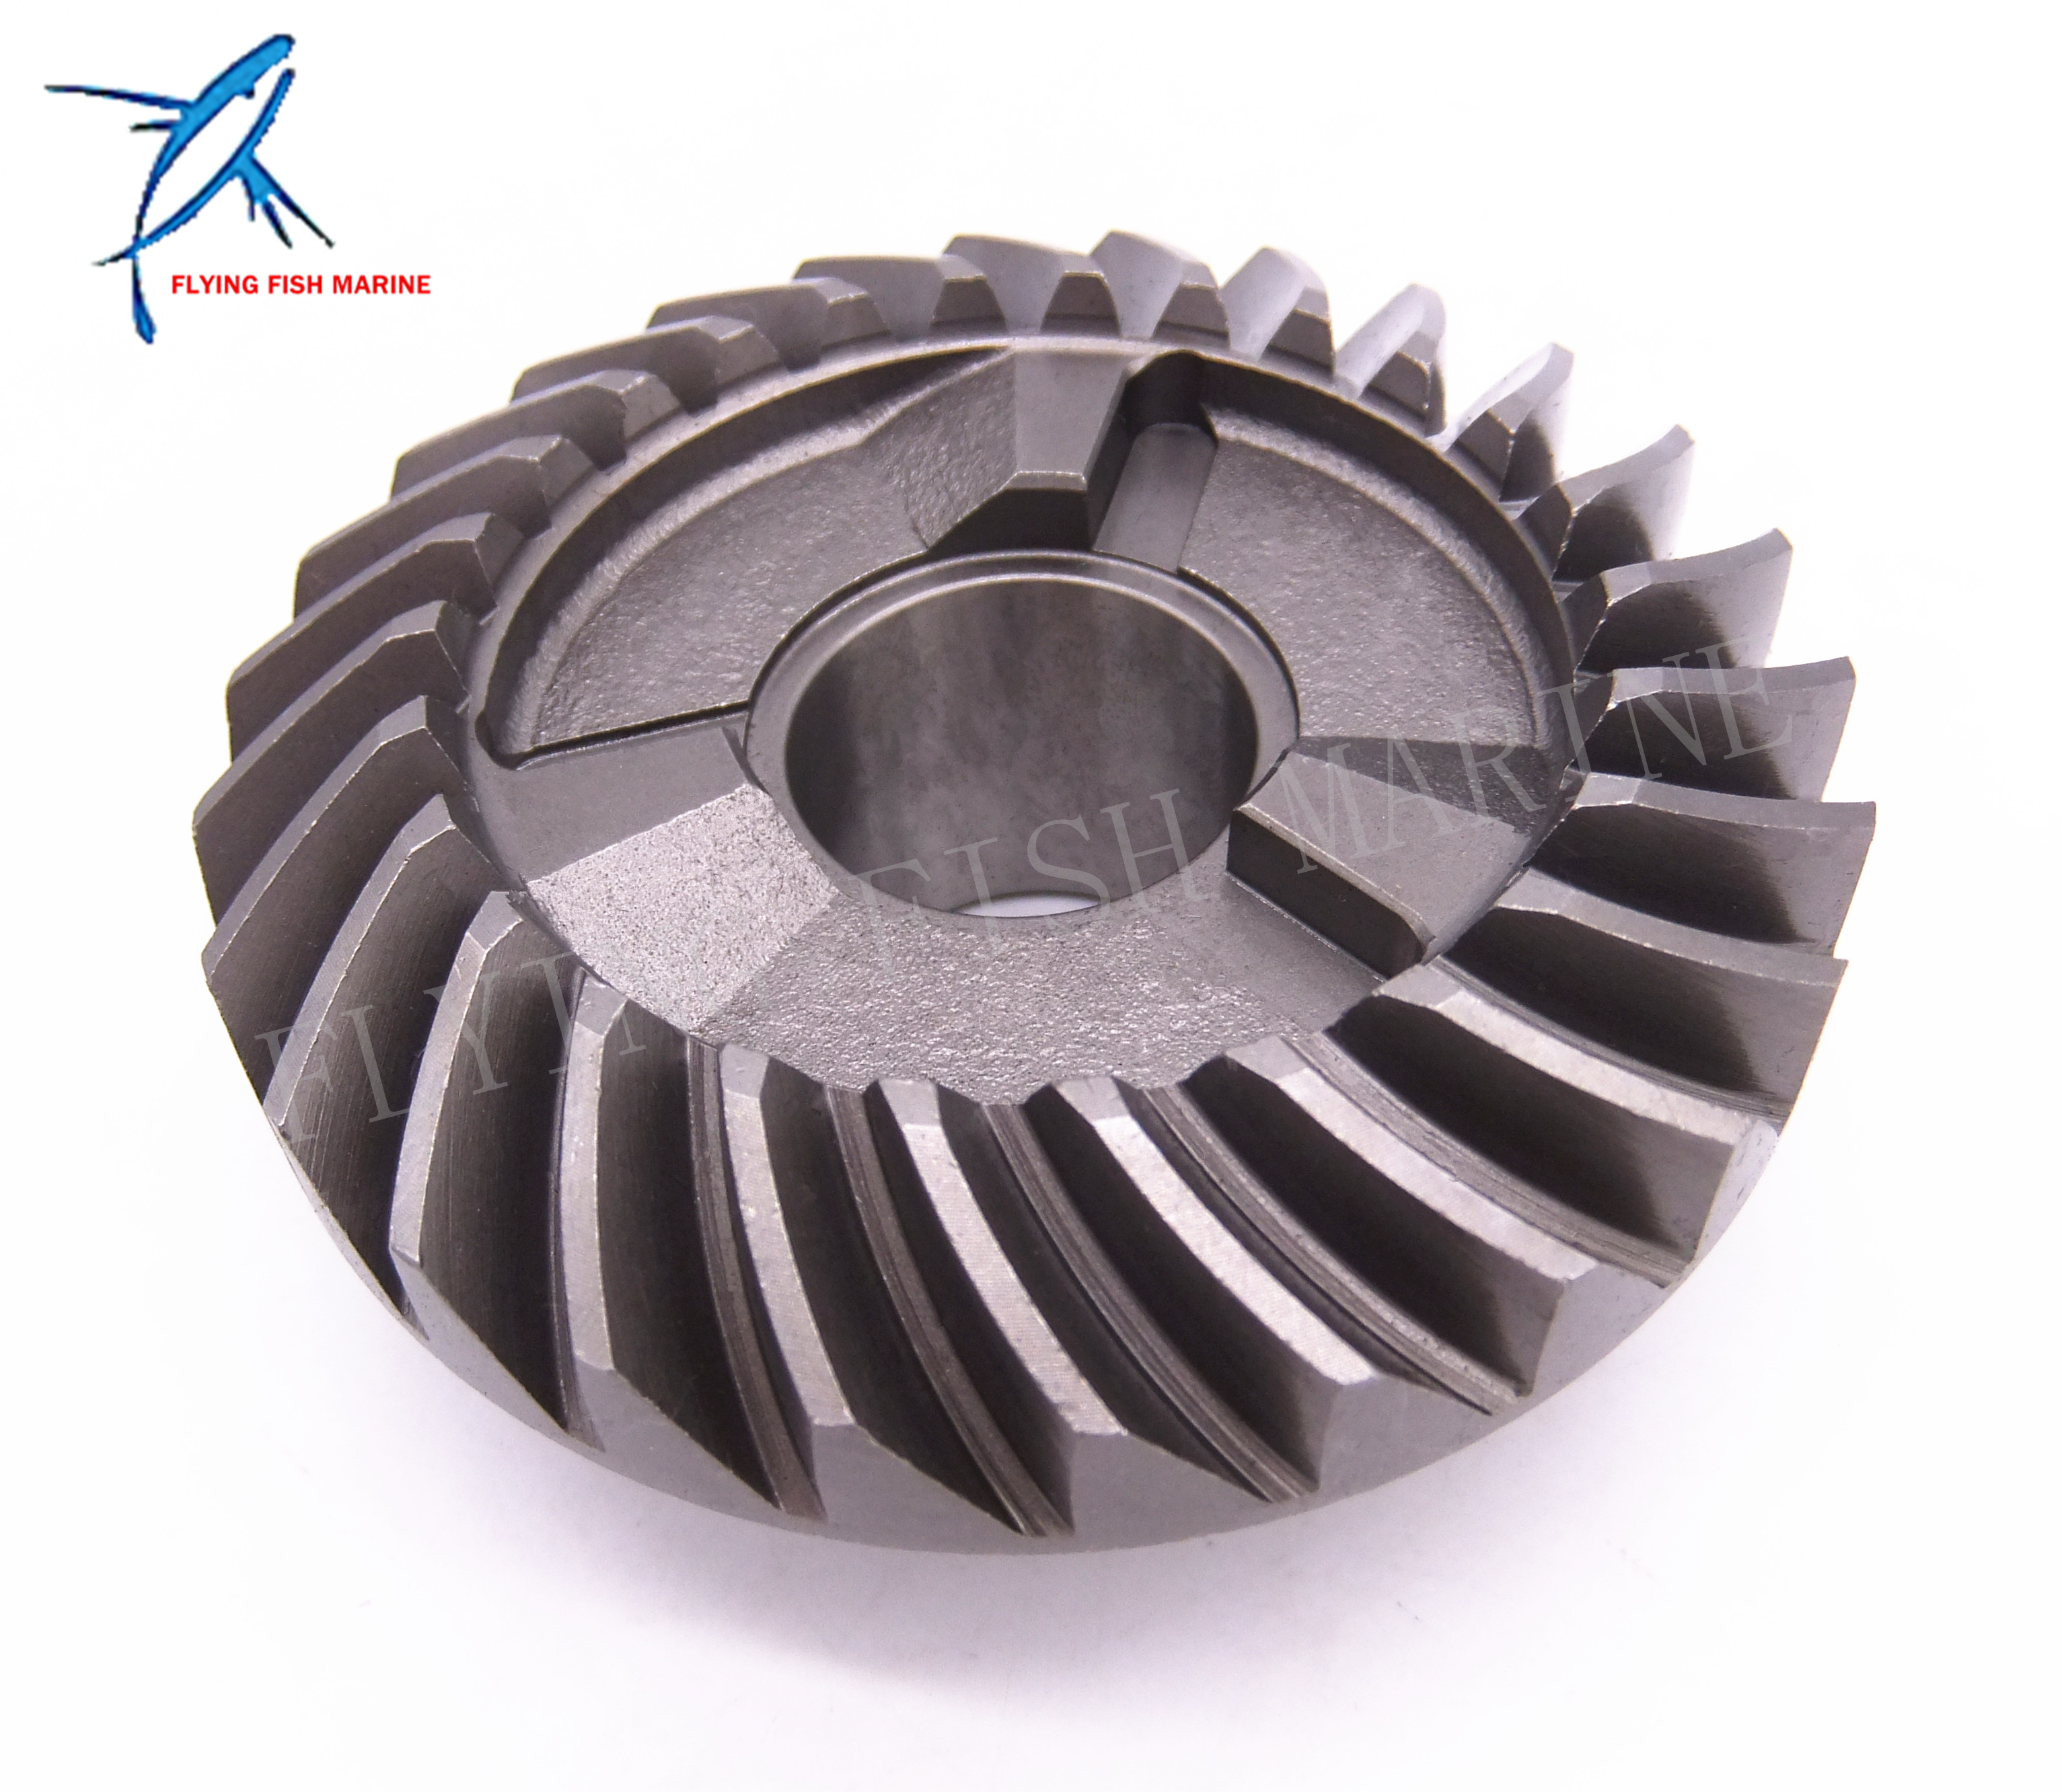 Atv,rv,boat & Other Vehicle Boat Motor T85-04000005 Reverse Gear For Parsun Hdx Outboard Engine 2-stroke T75 T85 T90 Free Shipping Boat Parts & Accessories